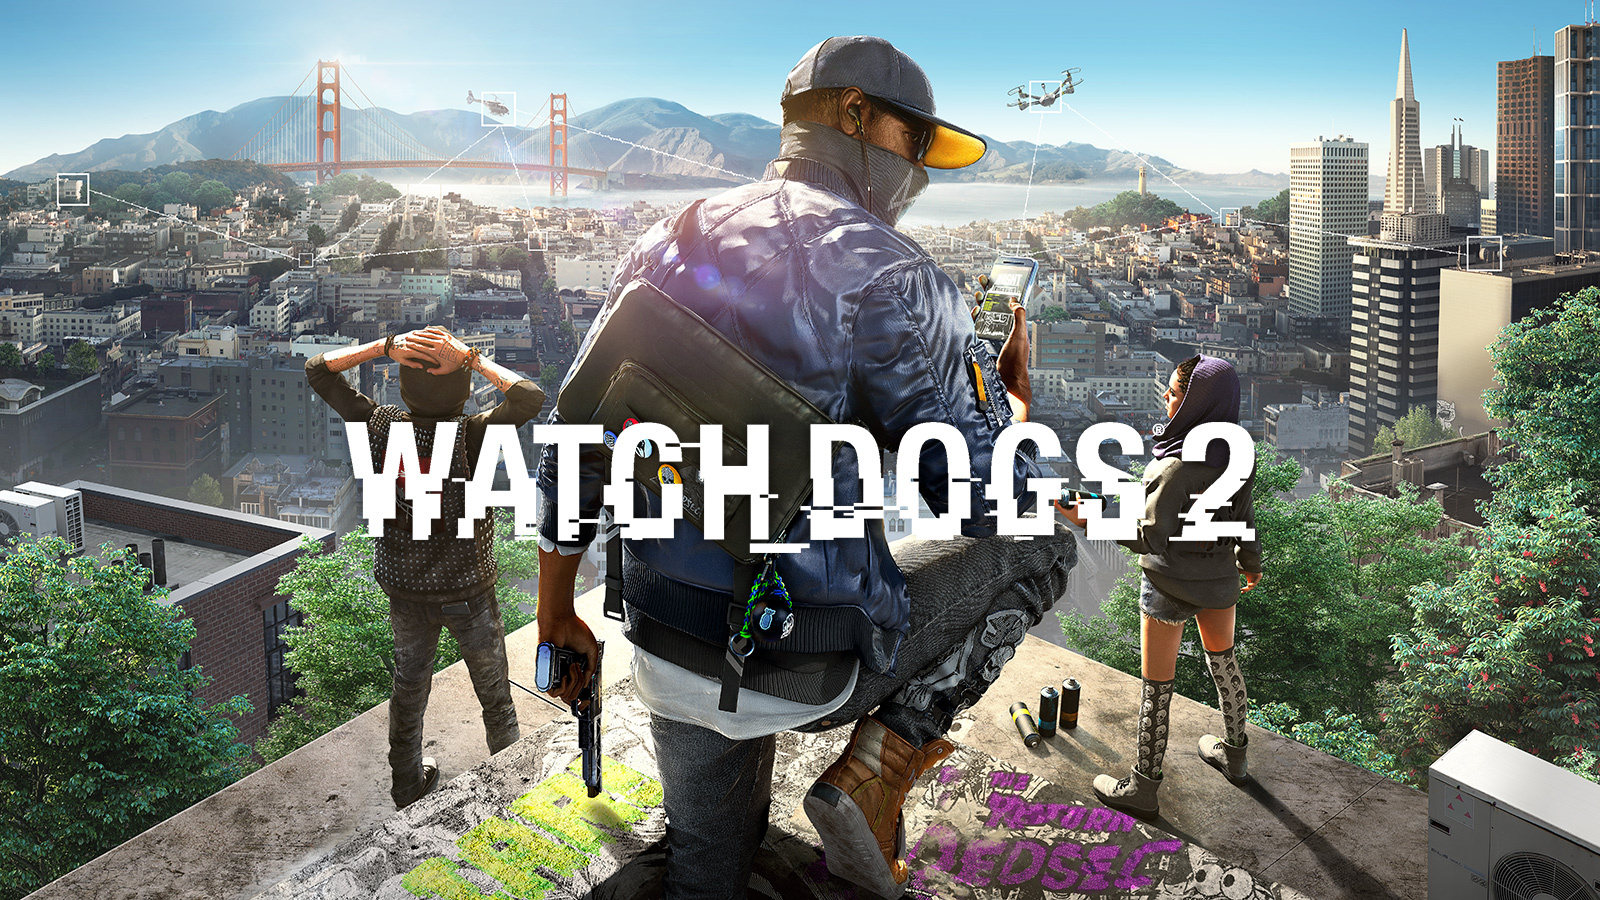 watch-dogs-2-image